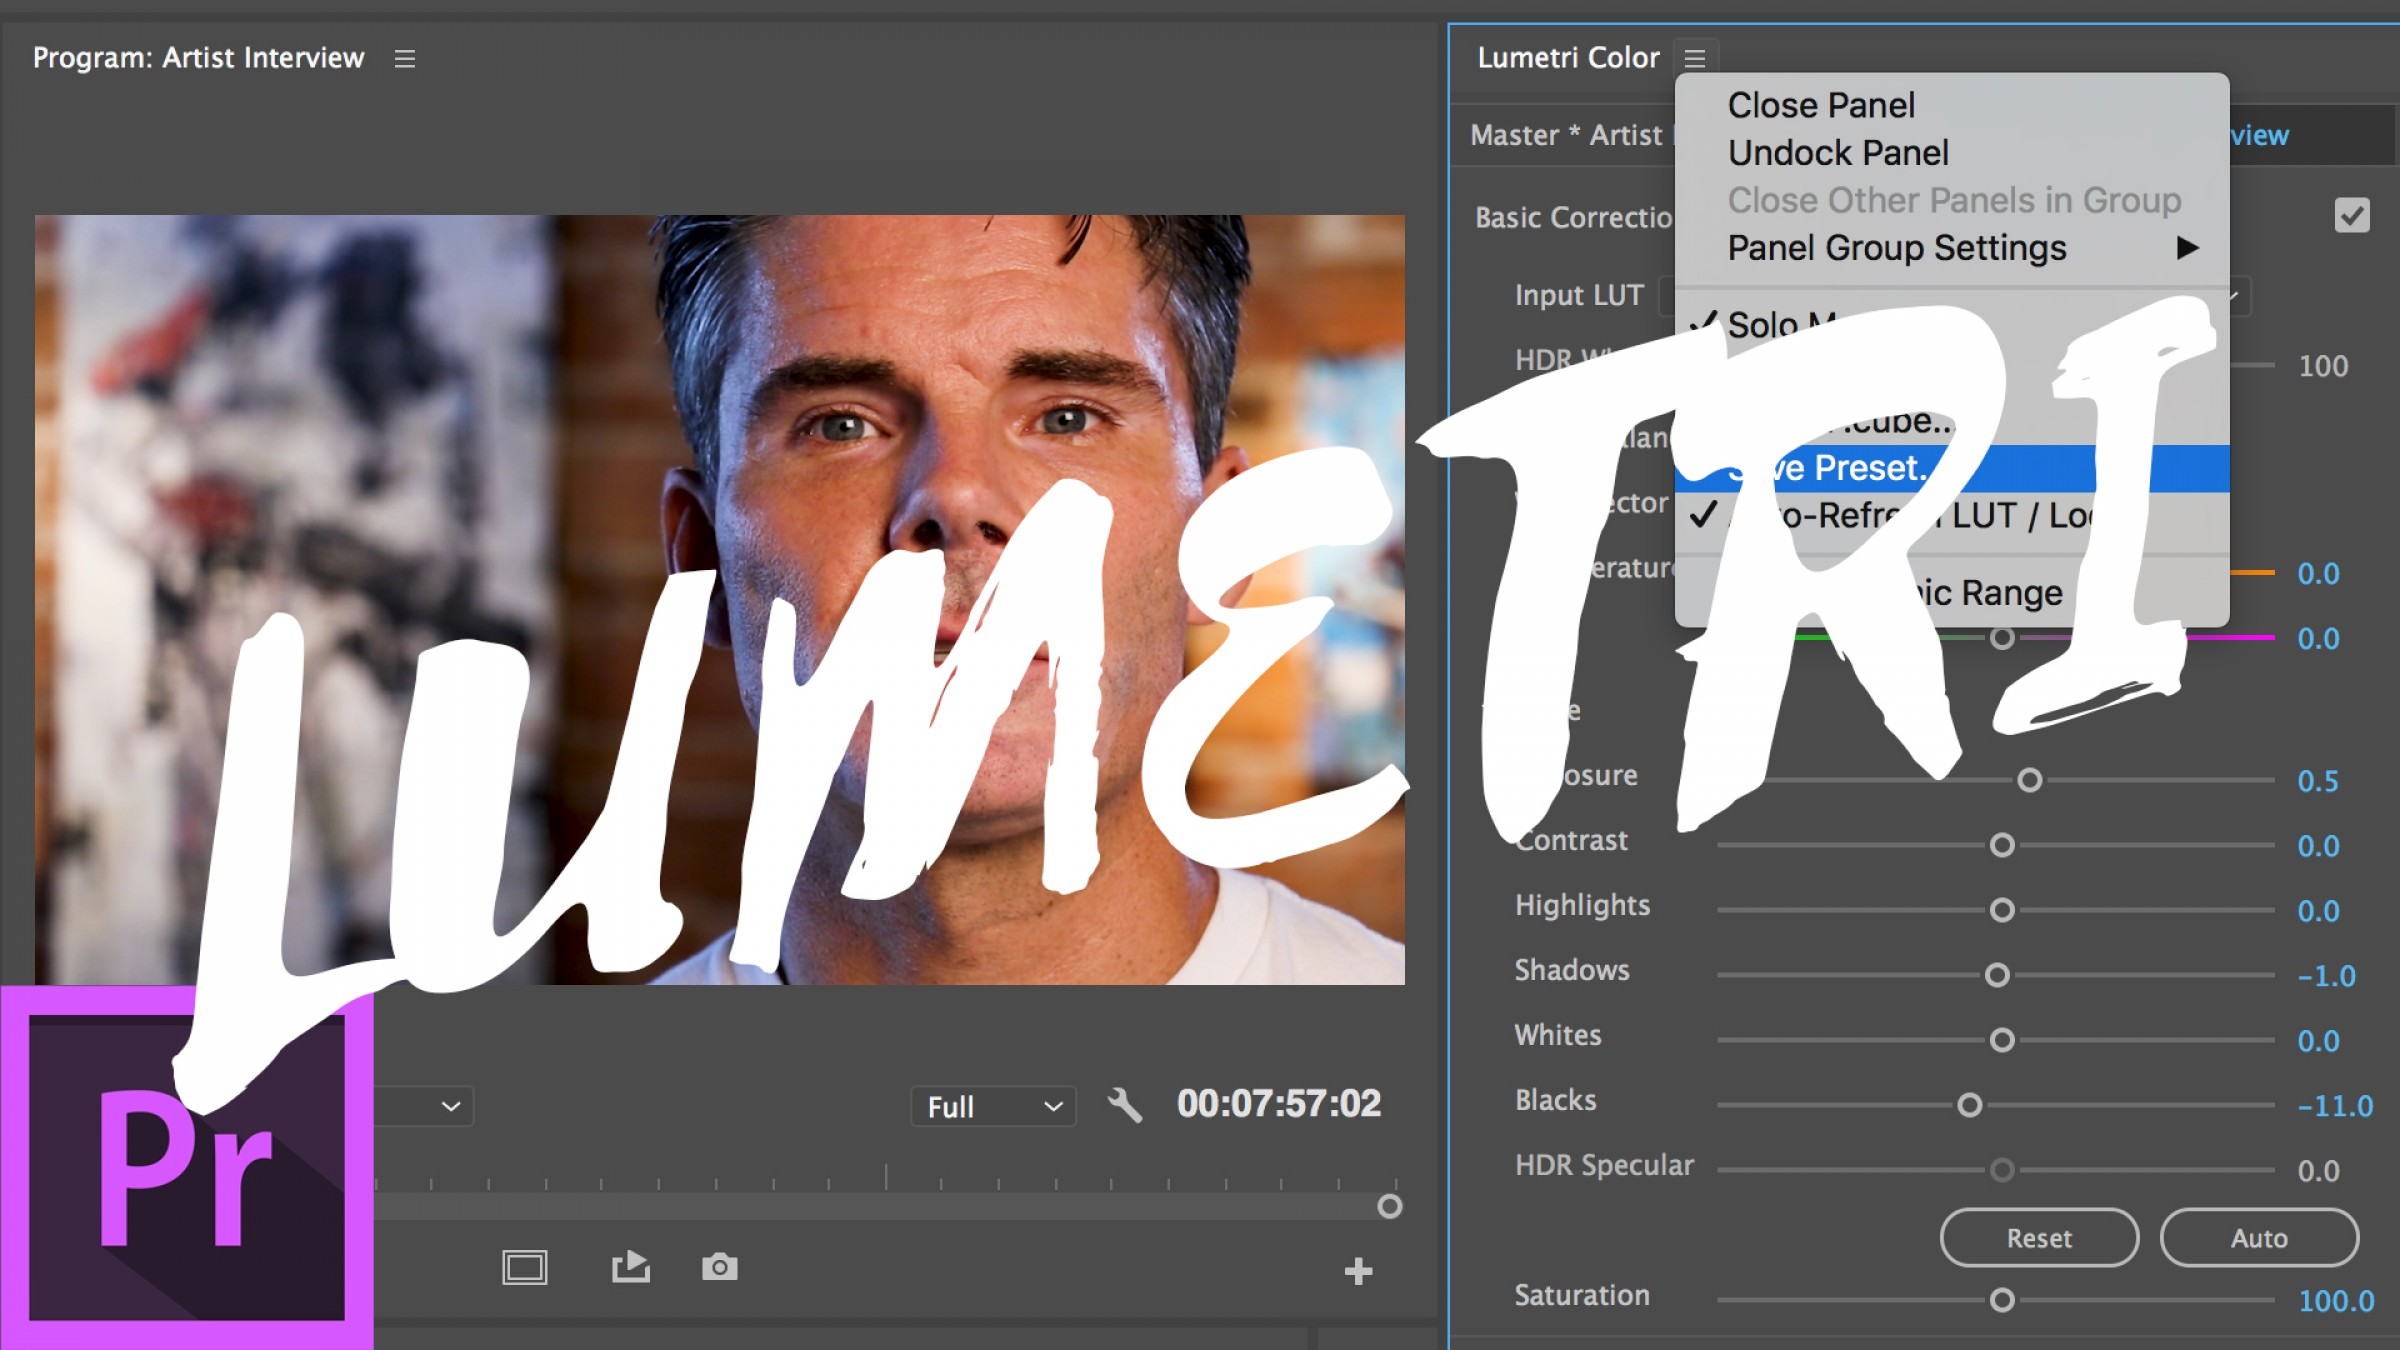 How to Create and Apply Lumetri Color Presets in Adobe Premiere Pro